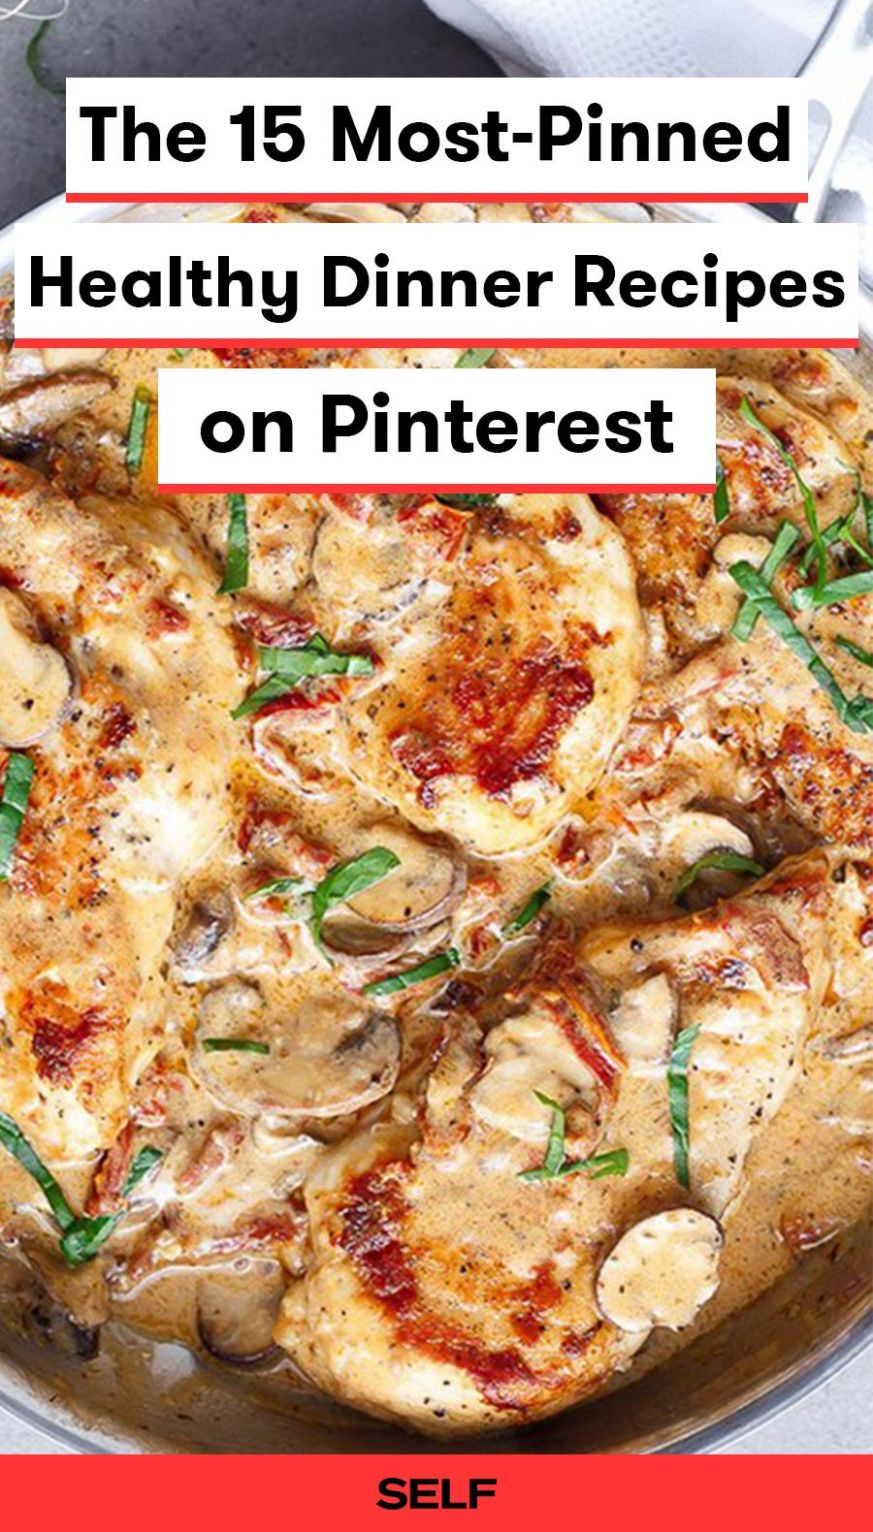 The 10 Most-Pinned Healthy Dinner Recipes on Pinterest | Heathly ...